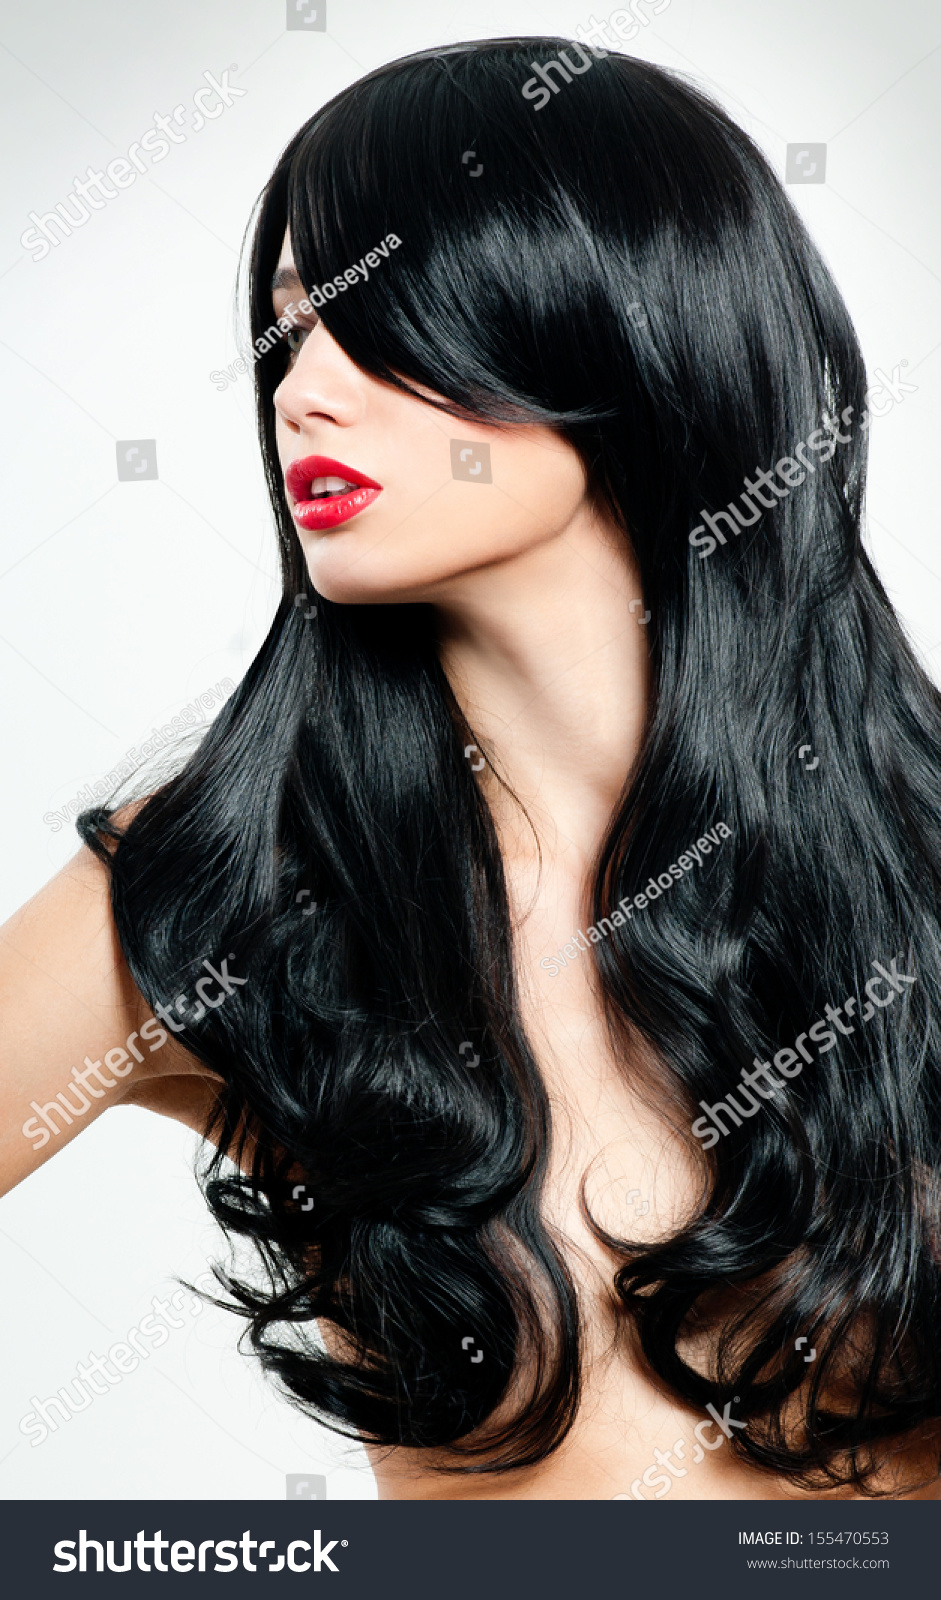 Black Hair. Fashion Girl Portrait. Long Hair And Red Lipstick. Stock Photo 155470553  Shutterstock